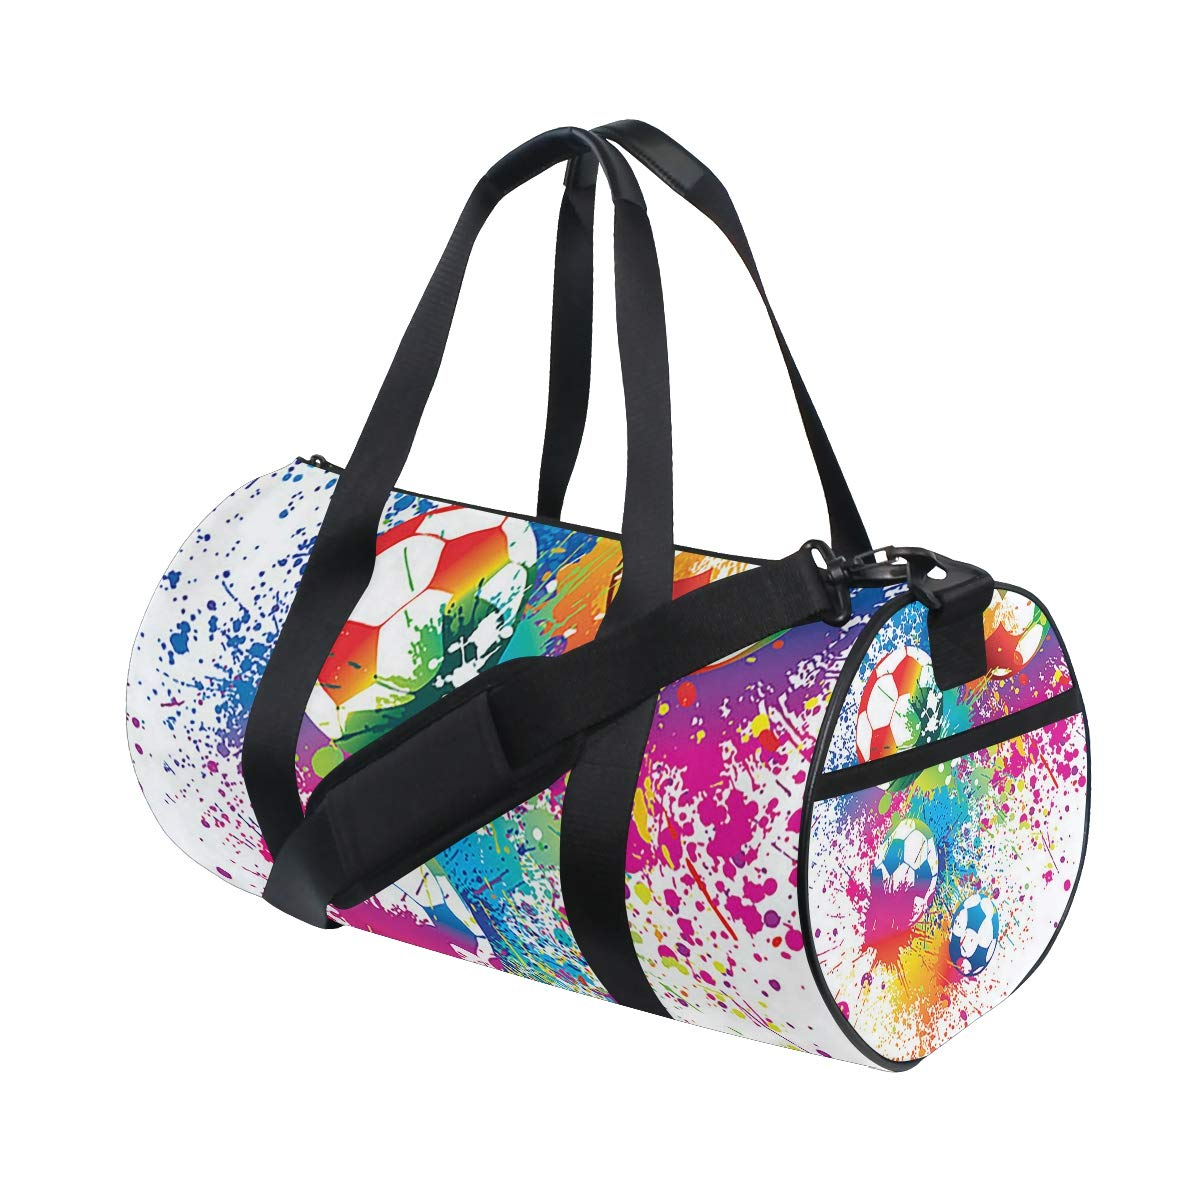 Colorful Sports Gym Bag Large Capacity Travel Duffel Bag